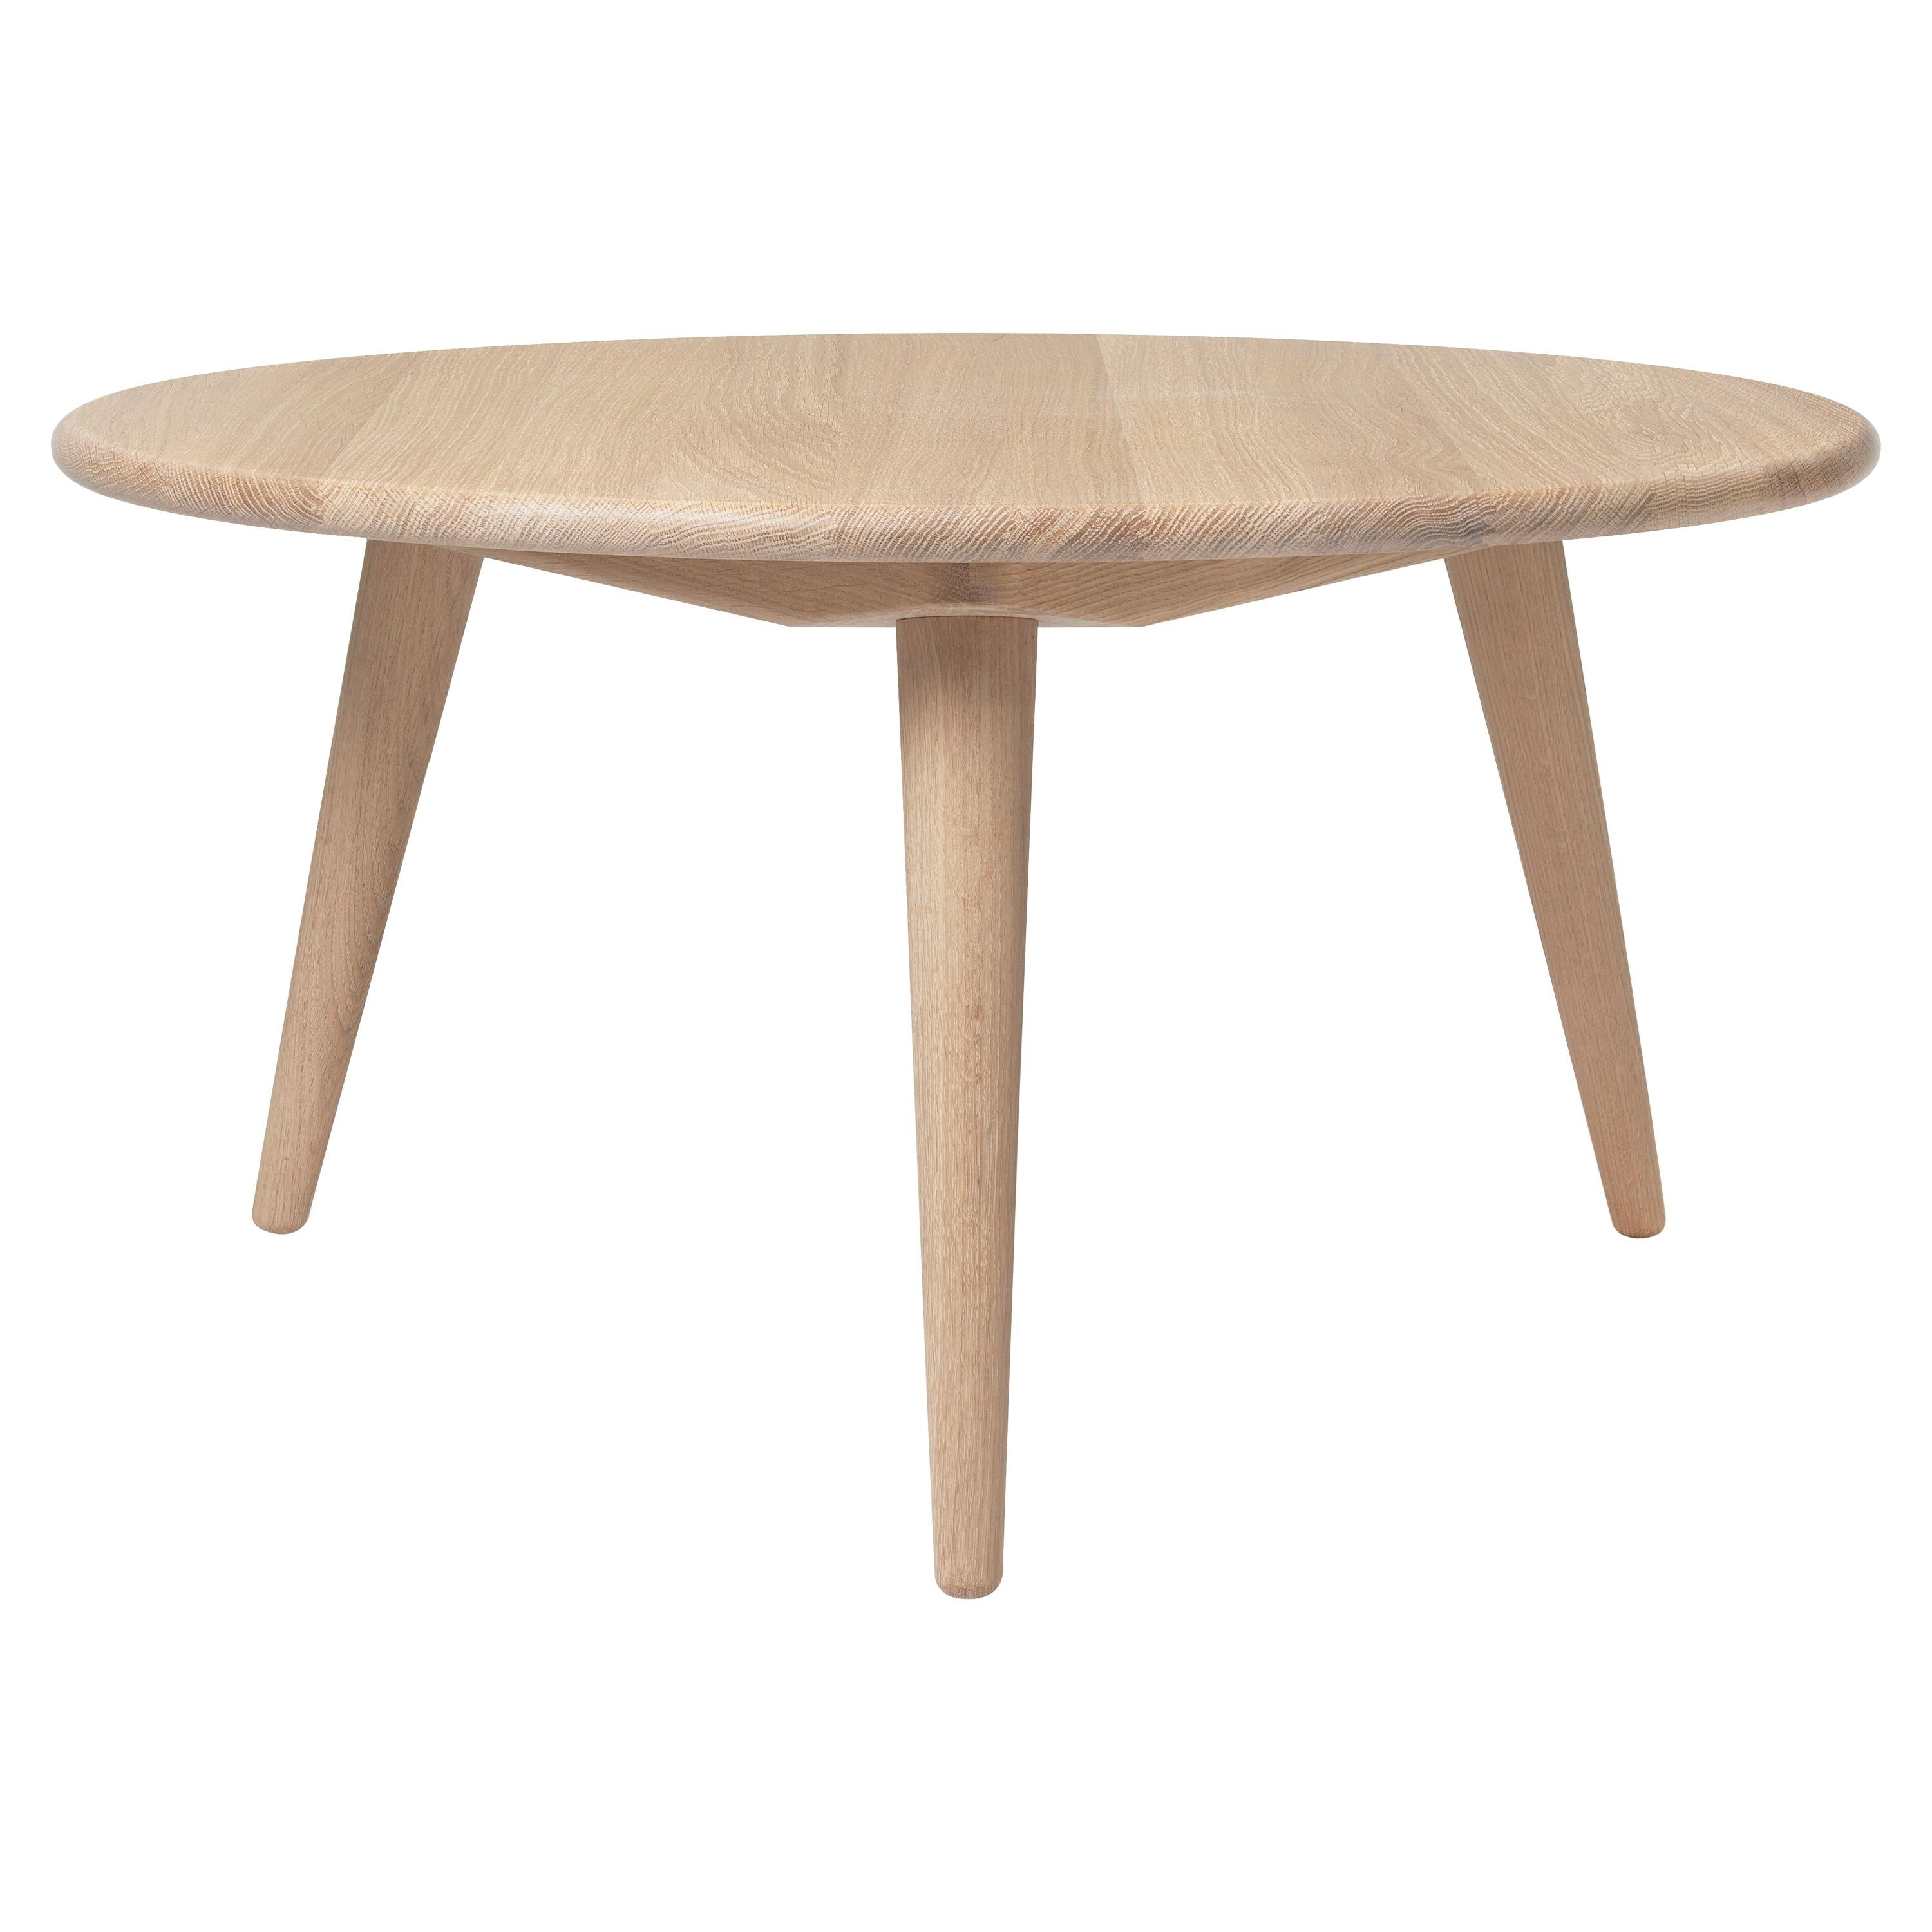 CH008 Large Coffee Table in Wood by Hans J. Wegner